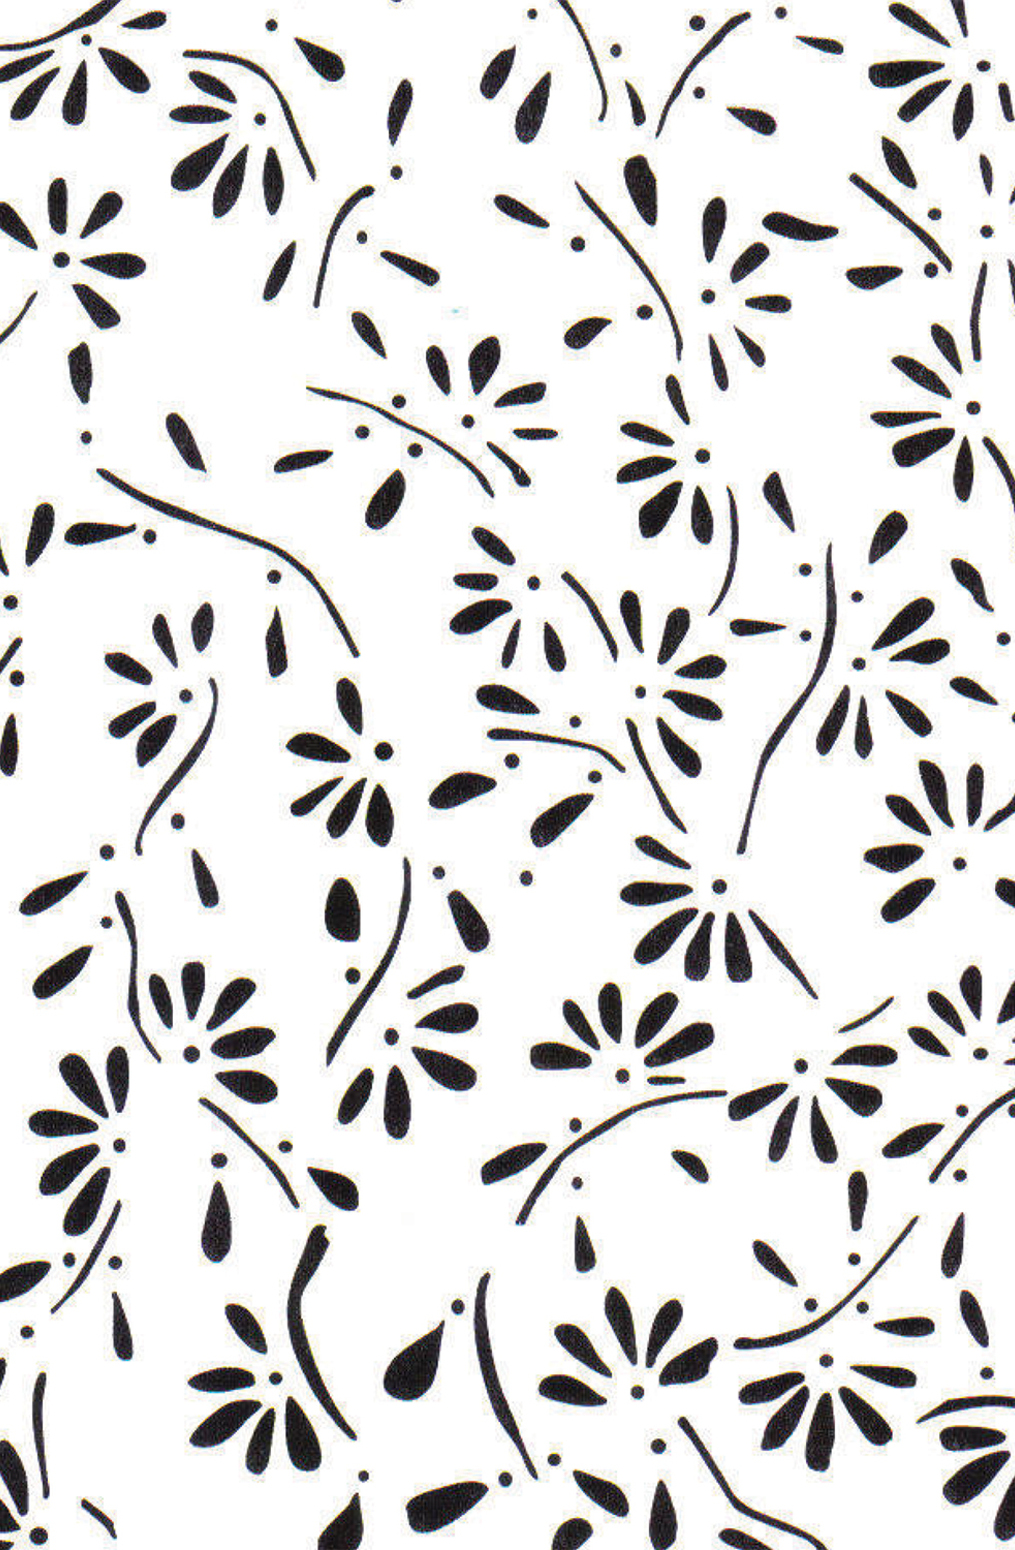 The school of making climbing daisy stencil 1